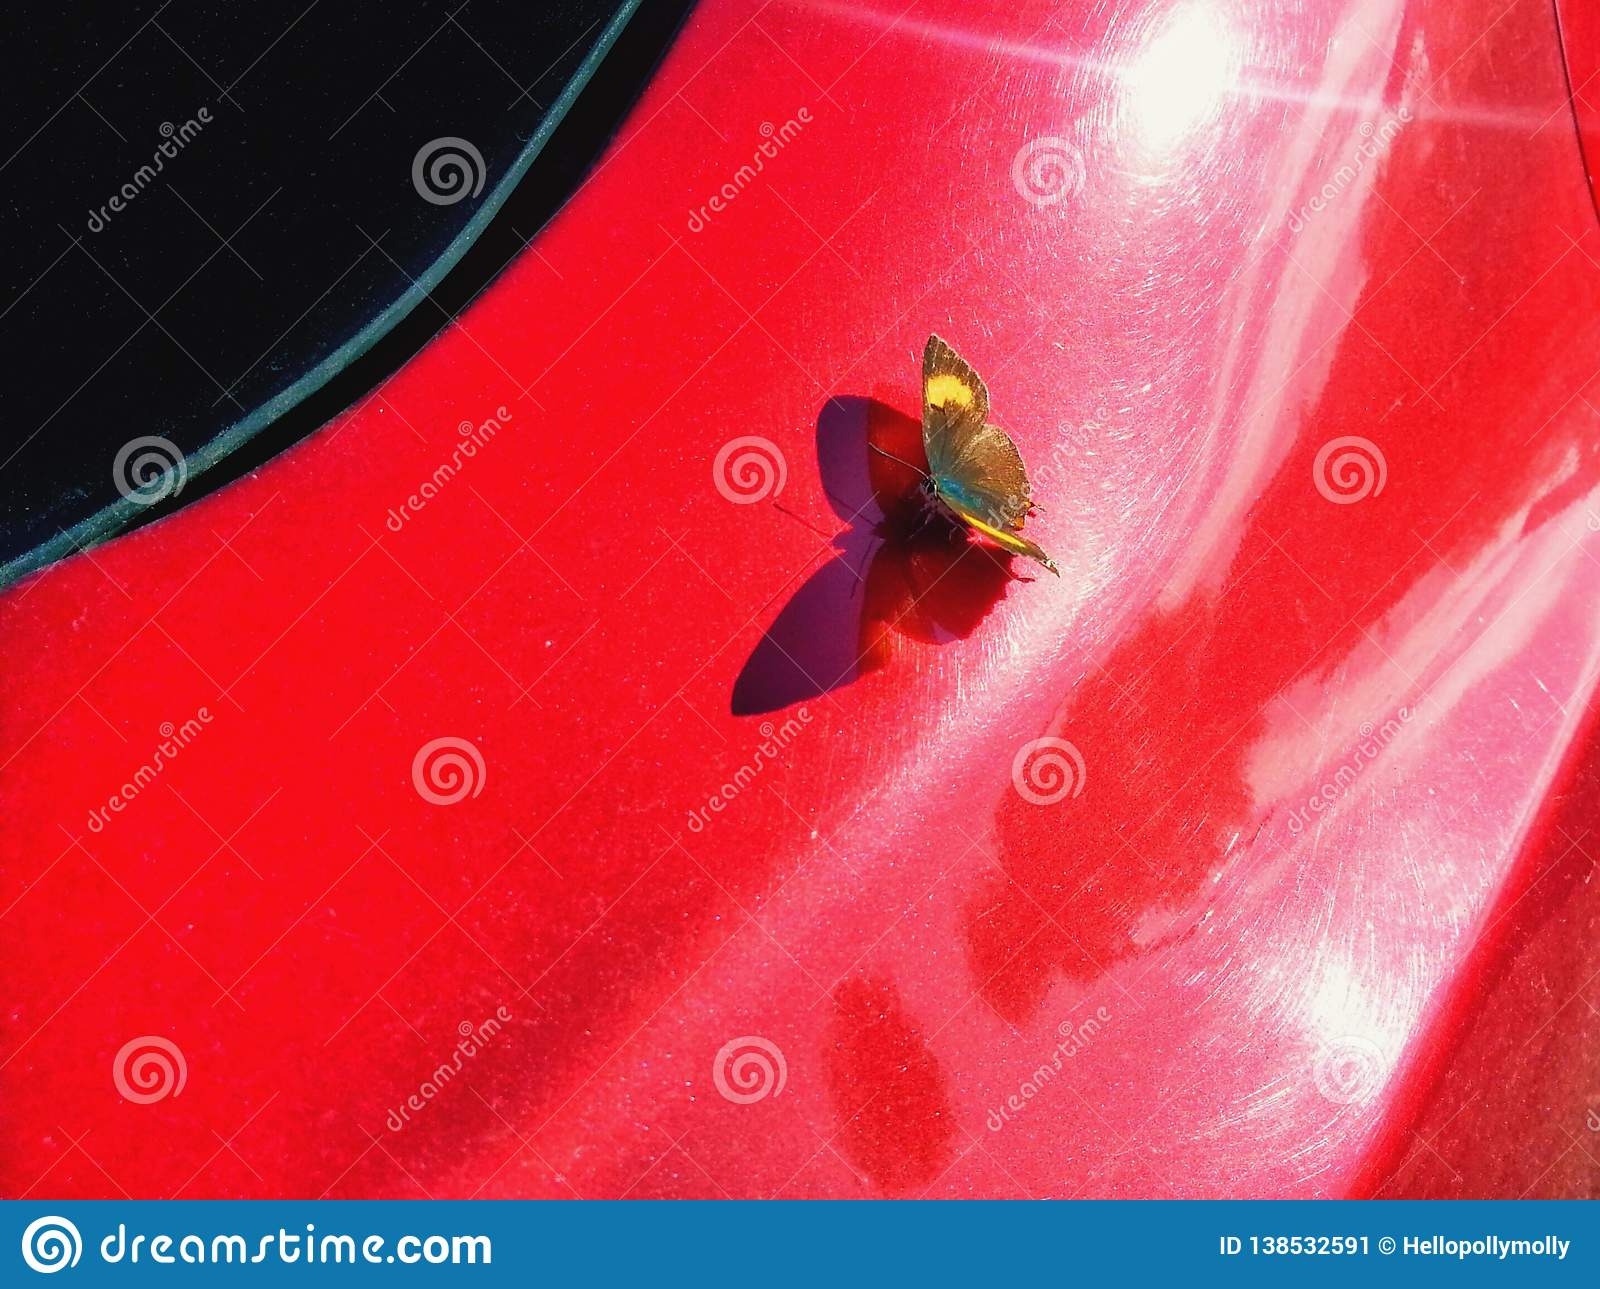 A butterfly on a red car